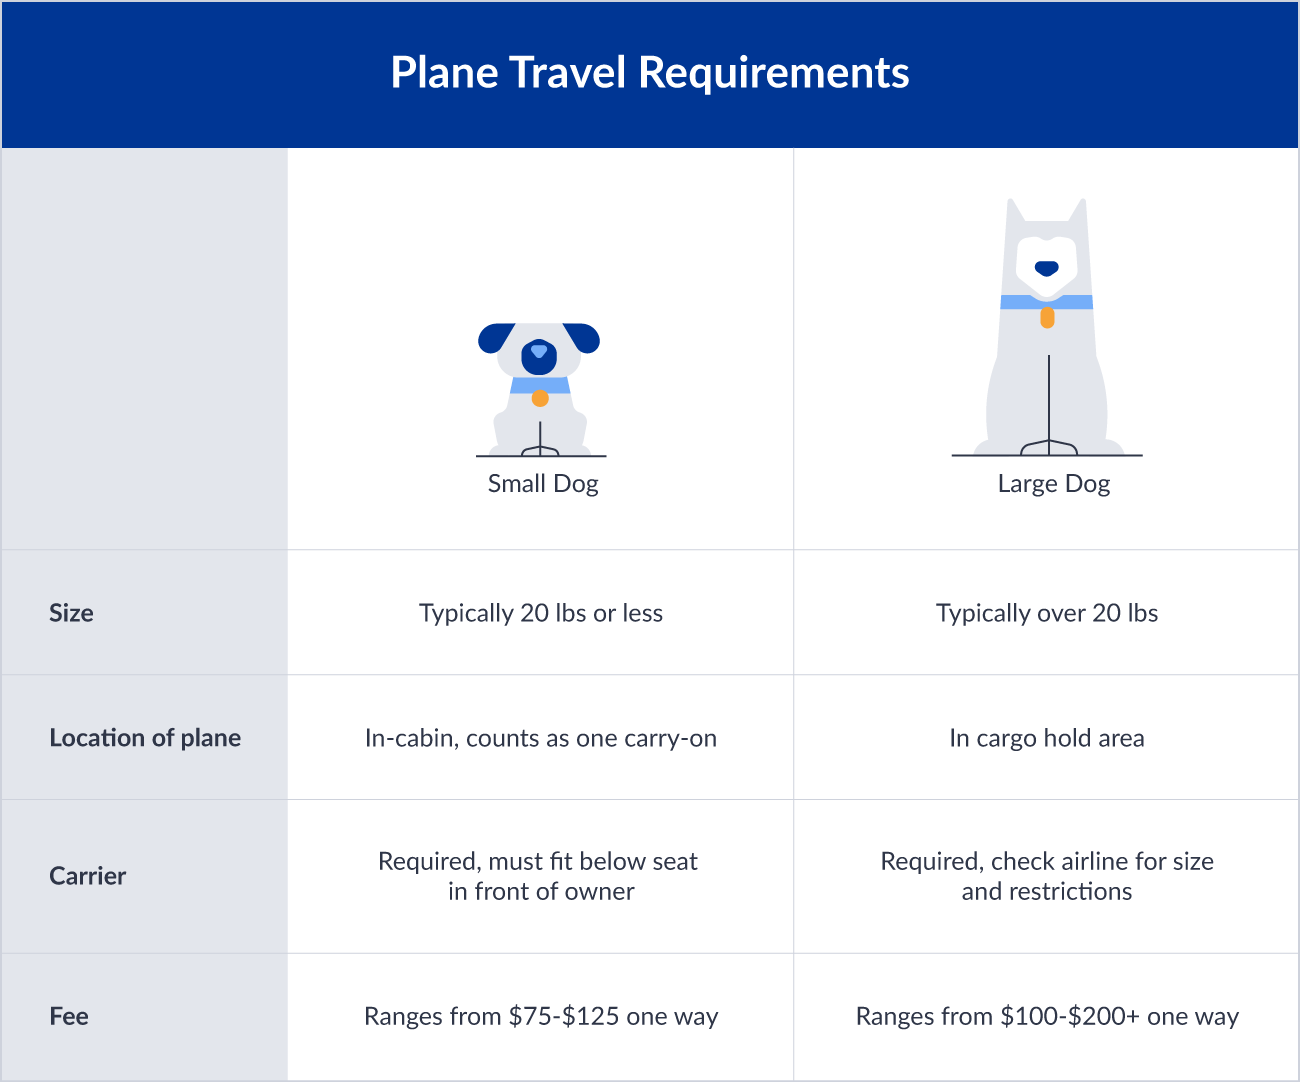 Plane travel dog size requirements.